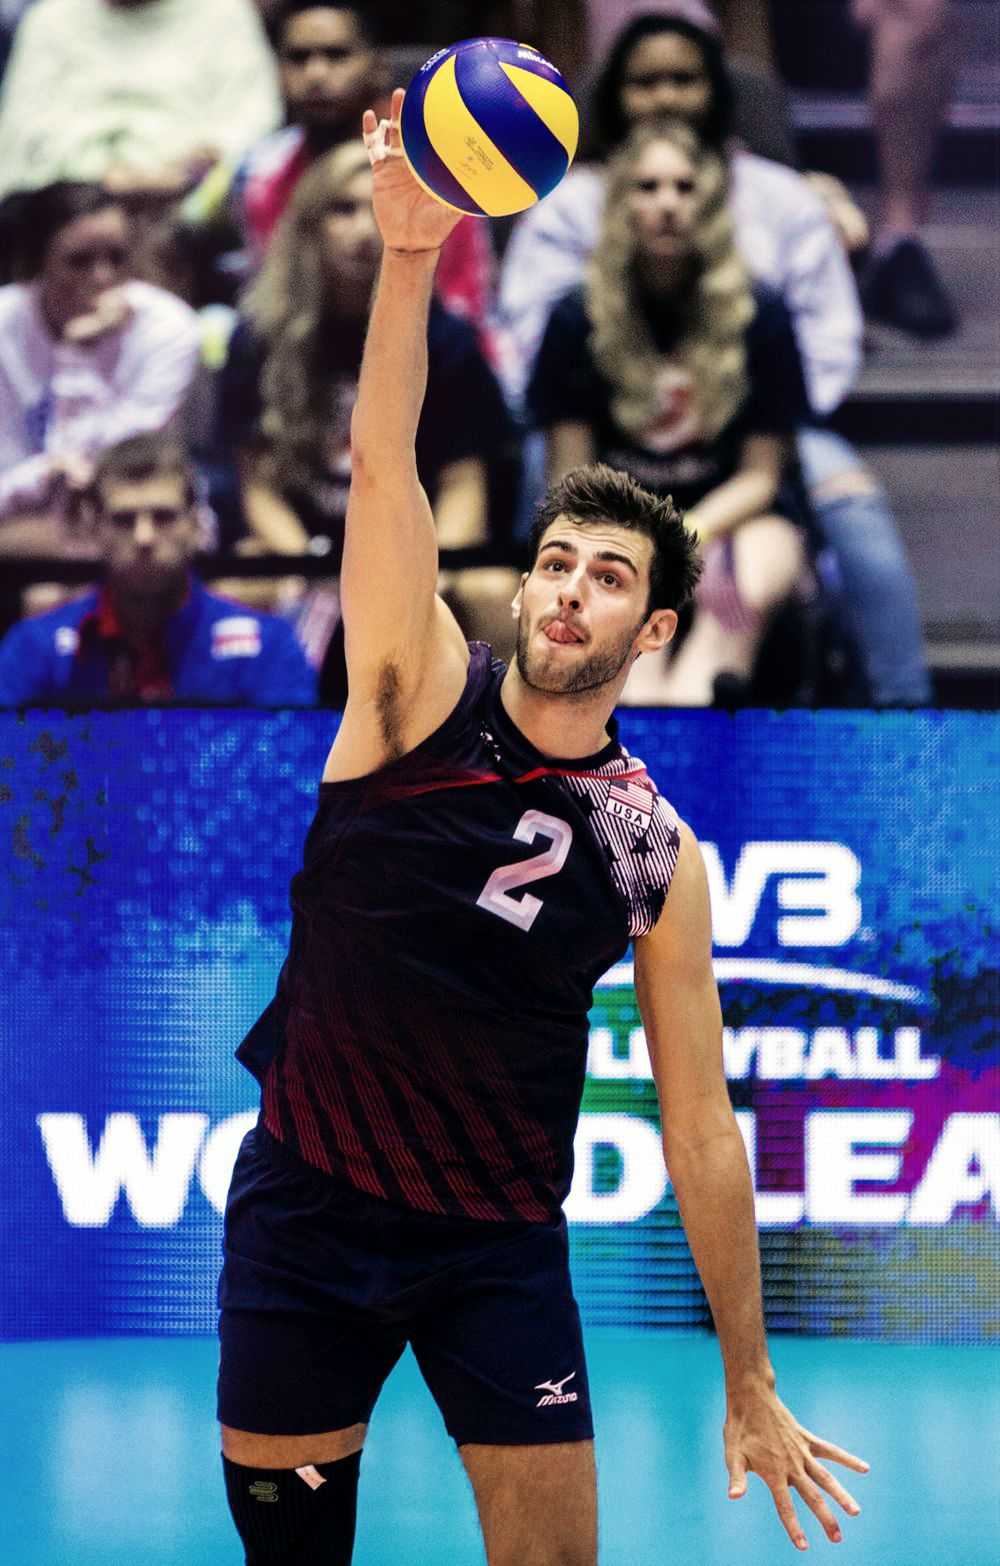 Cichypit Usa Volleyball Team Mens Volleyball Volleyball Uniforms